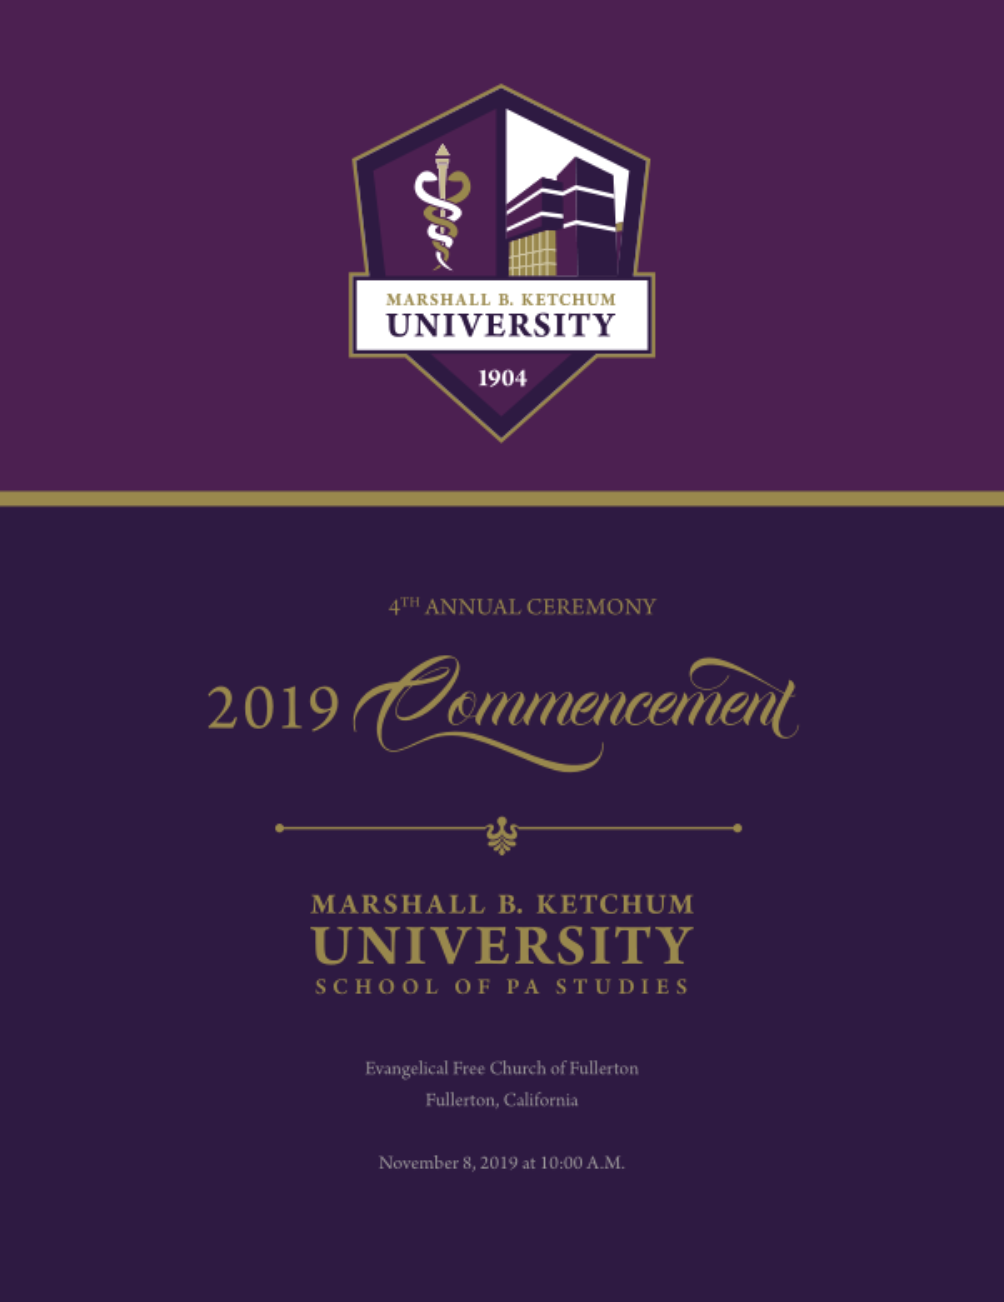 MBKU's 2019 School of PA Studies Commencement Program